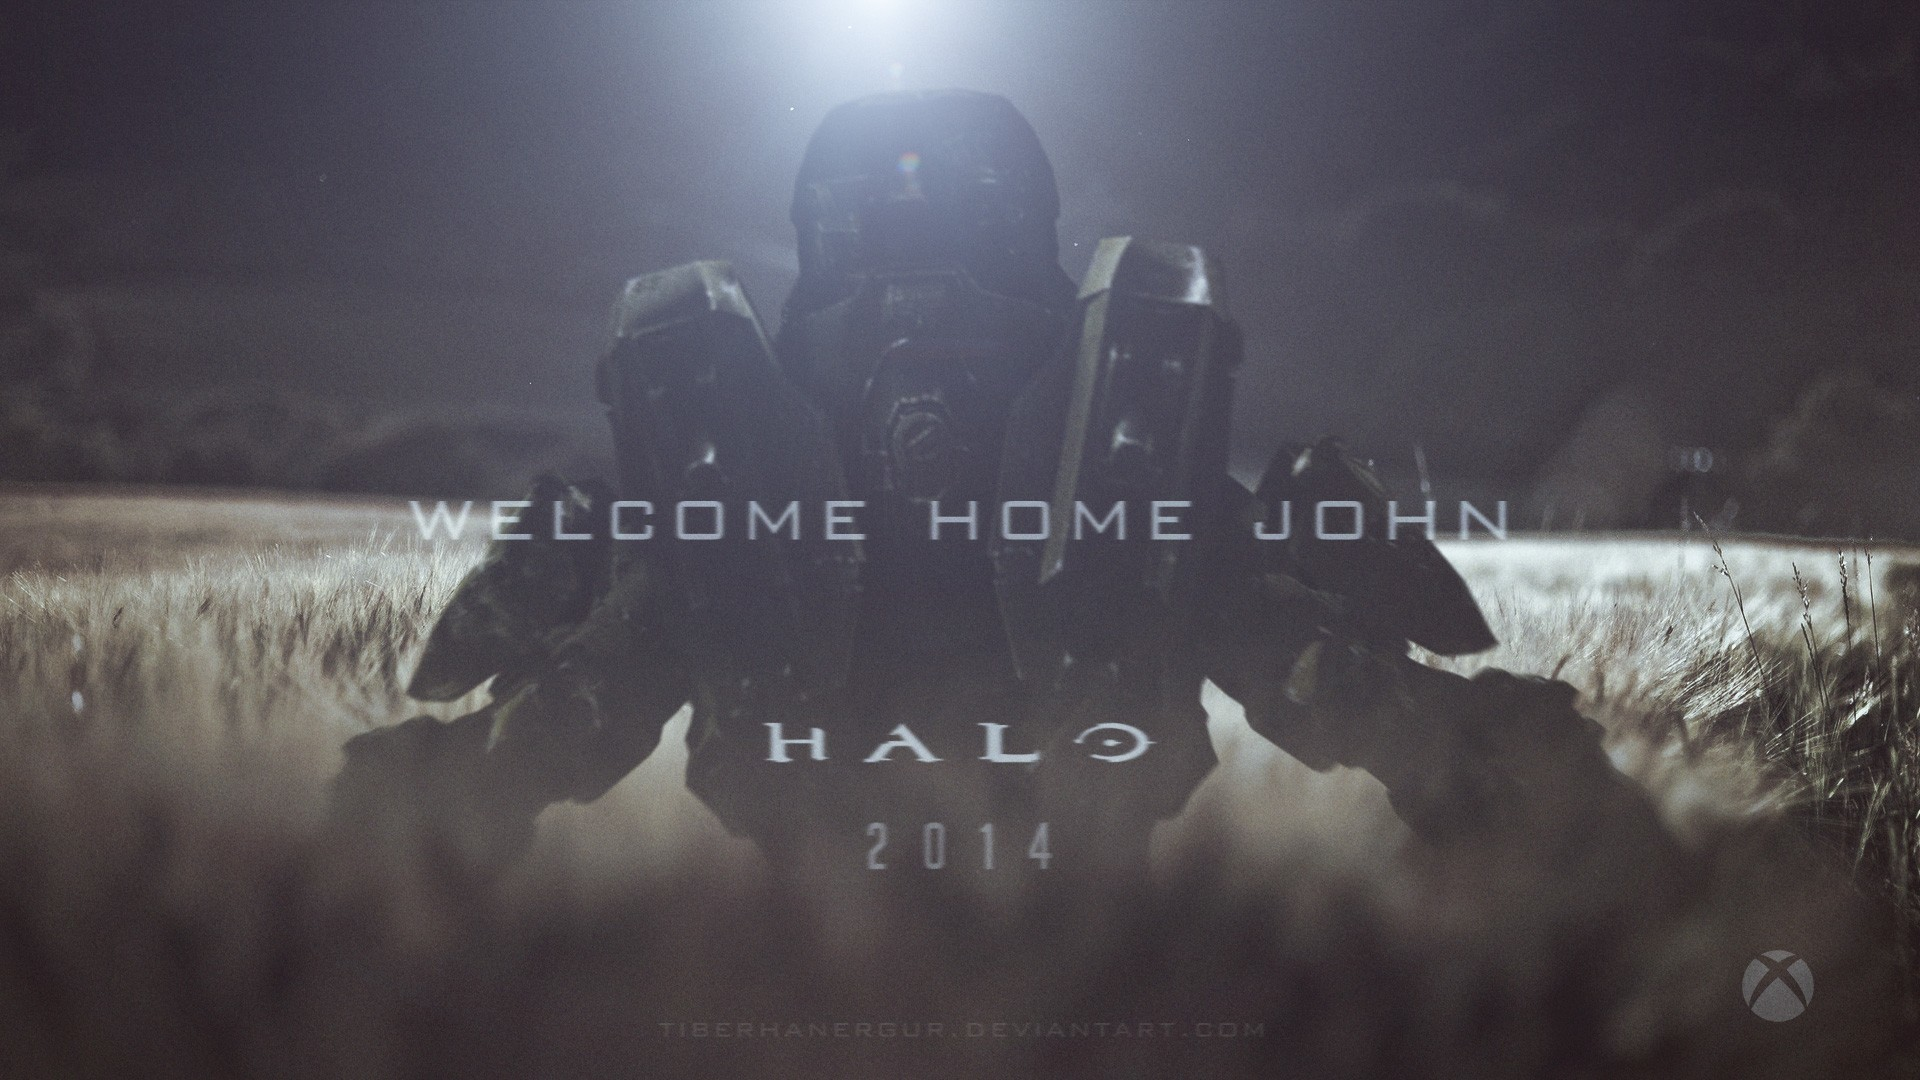 Halo, Master Chief, Xbox One, Halo: Master Chief Collection, Halo 5, Video  Games Wallpapers HD / Desktop and Mobile Backgrounds